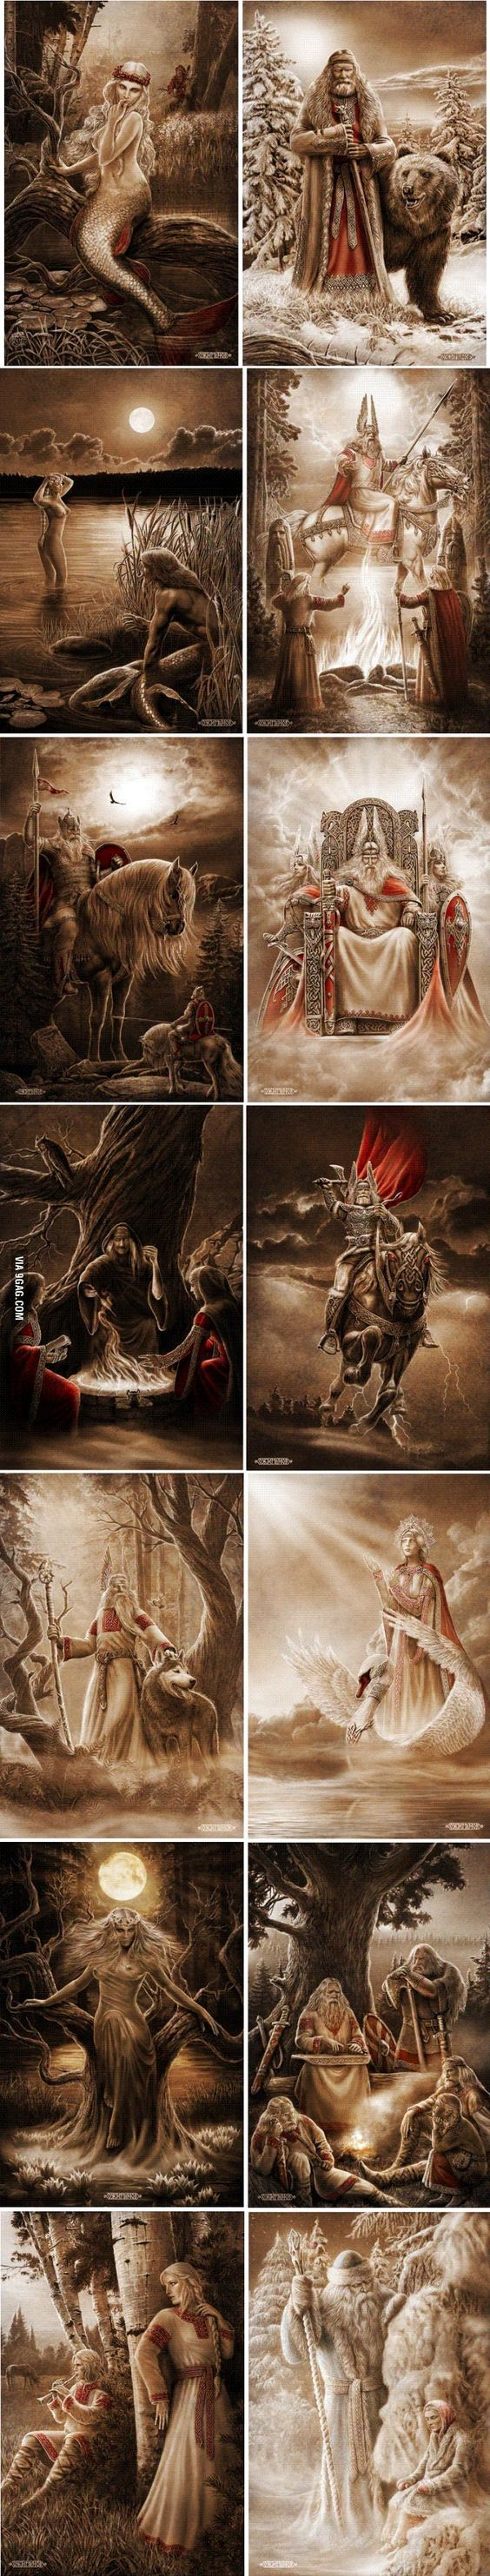 Slavic mythology is f**king badass. By Igor Ozhiganov: